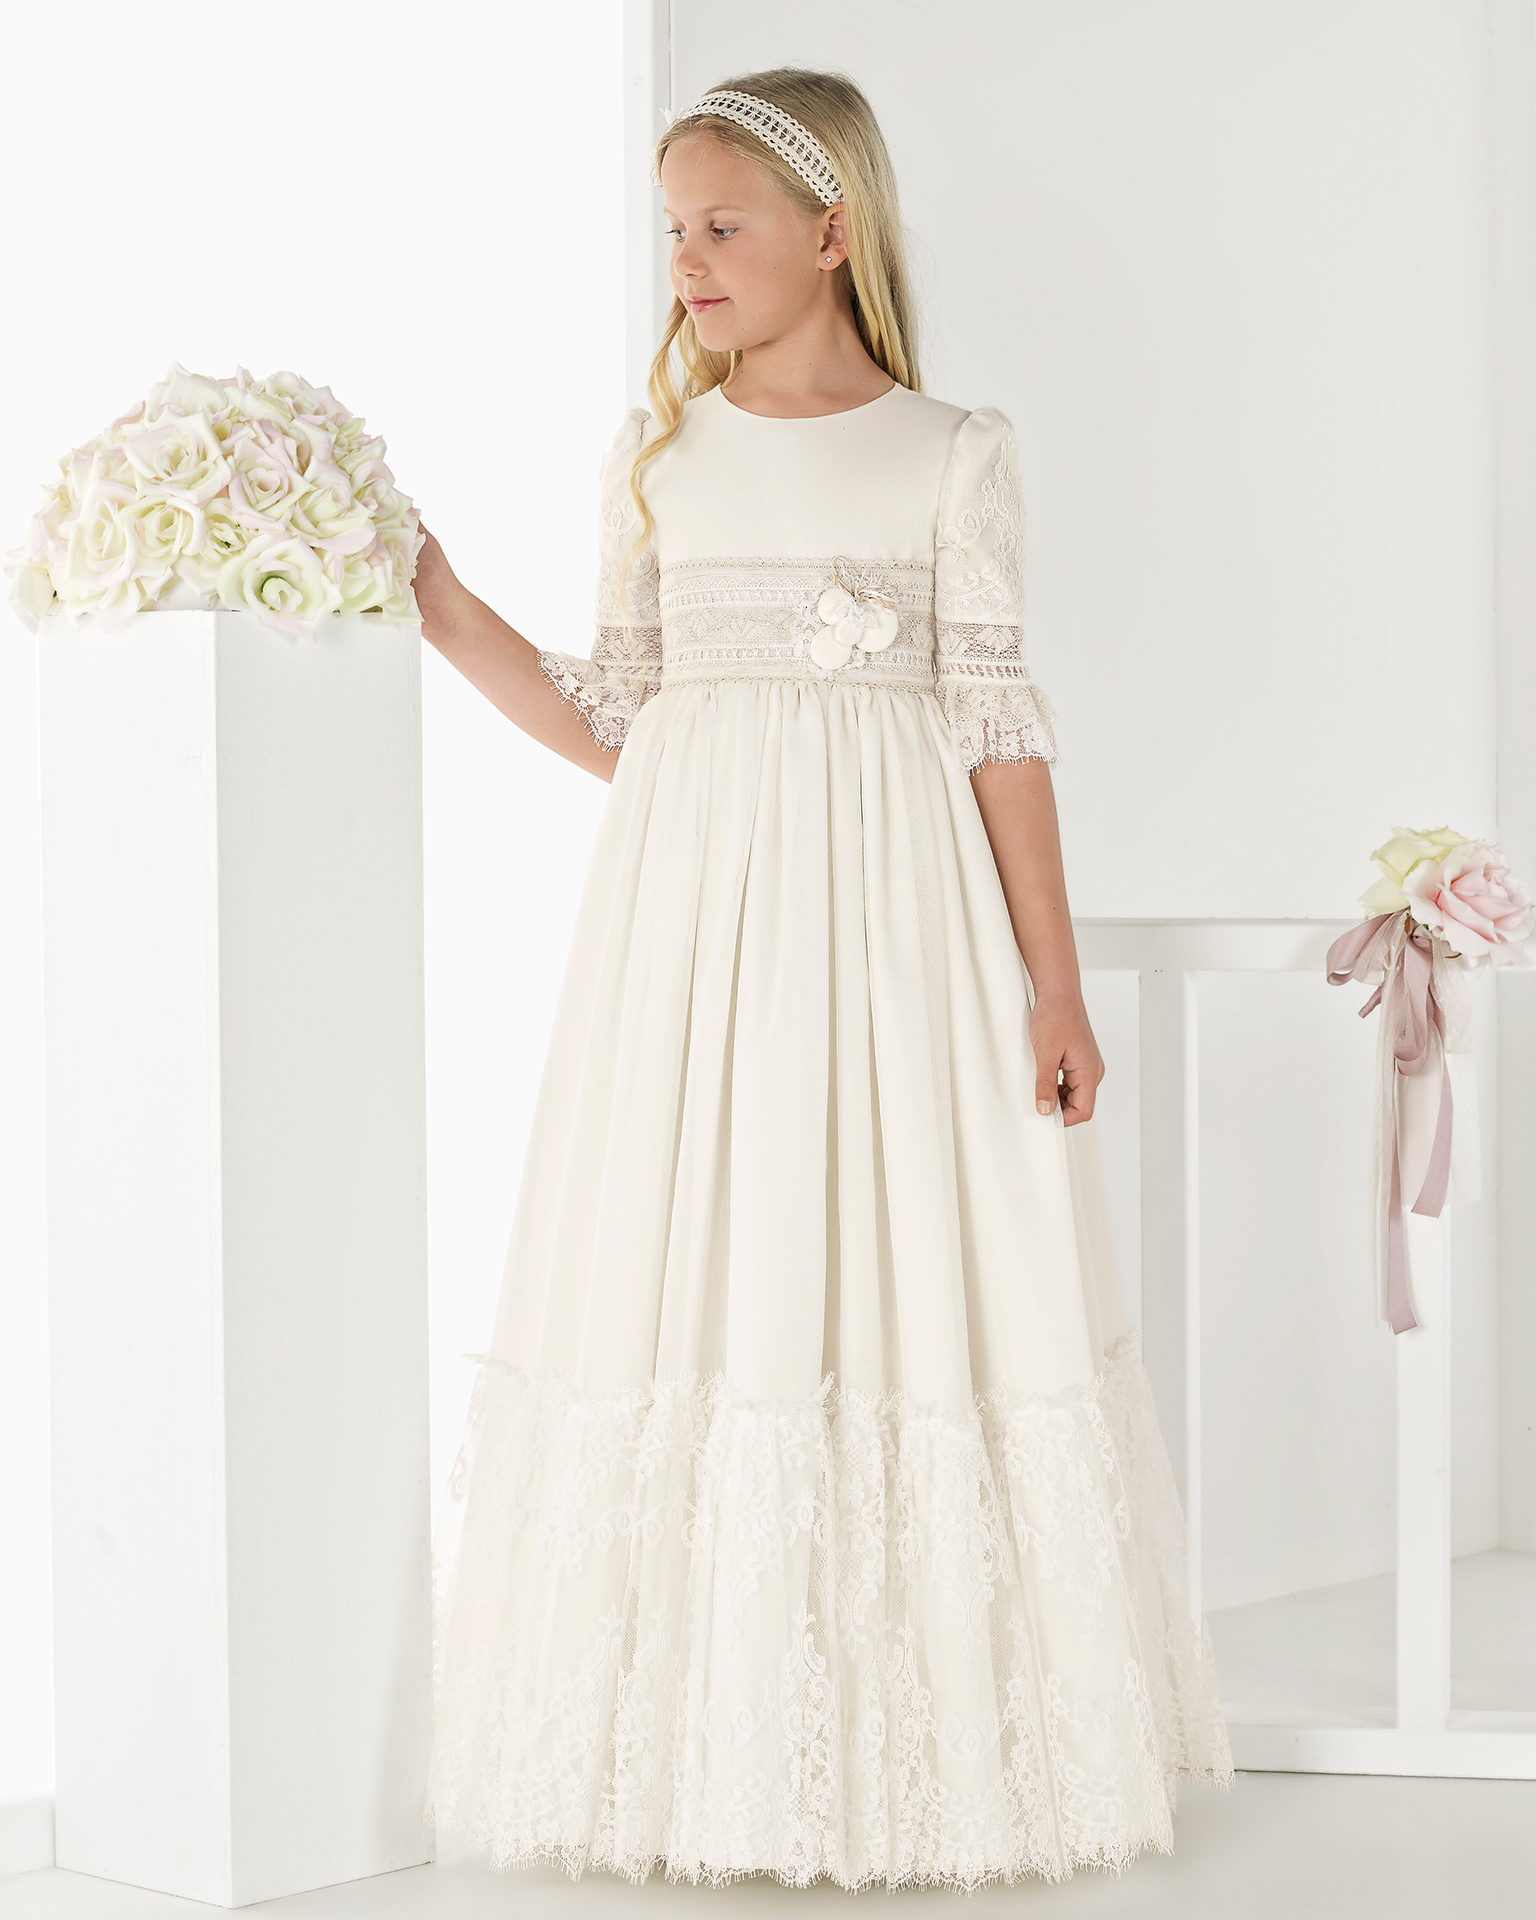 Princess-style rustic-weave First Communion or bridesmaid's dress with empire waist, in ivory. 2018 AIRE COMUNION Collection.